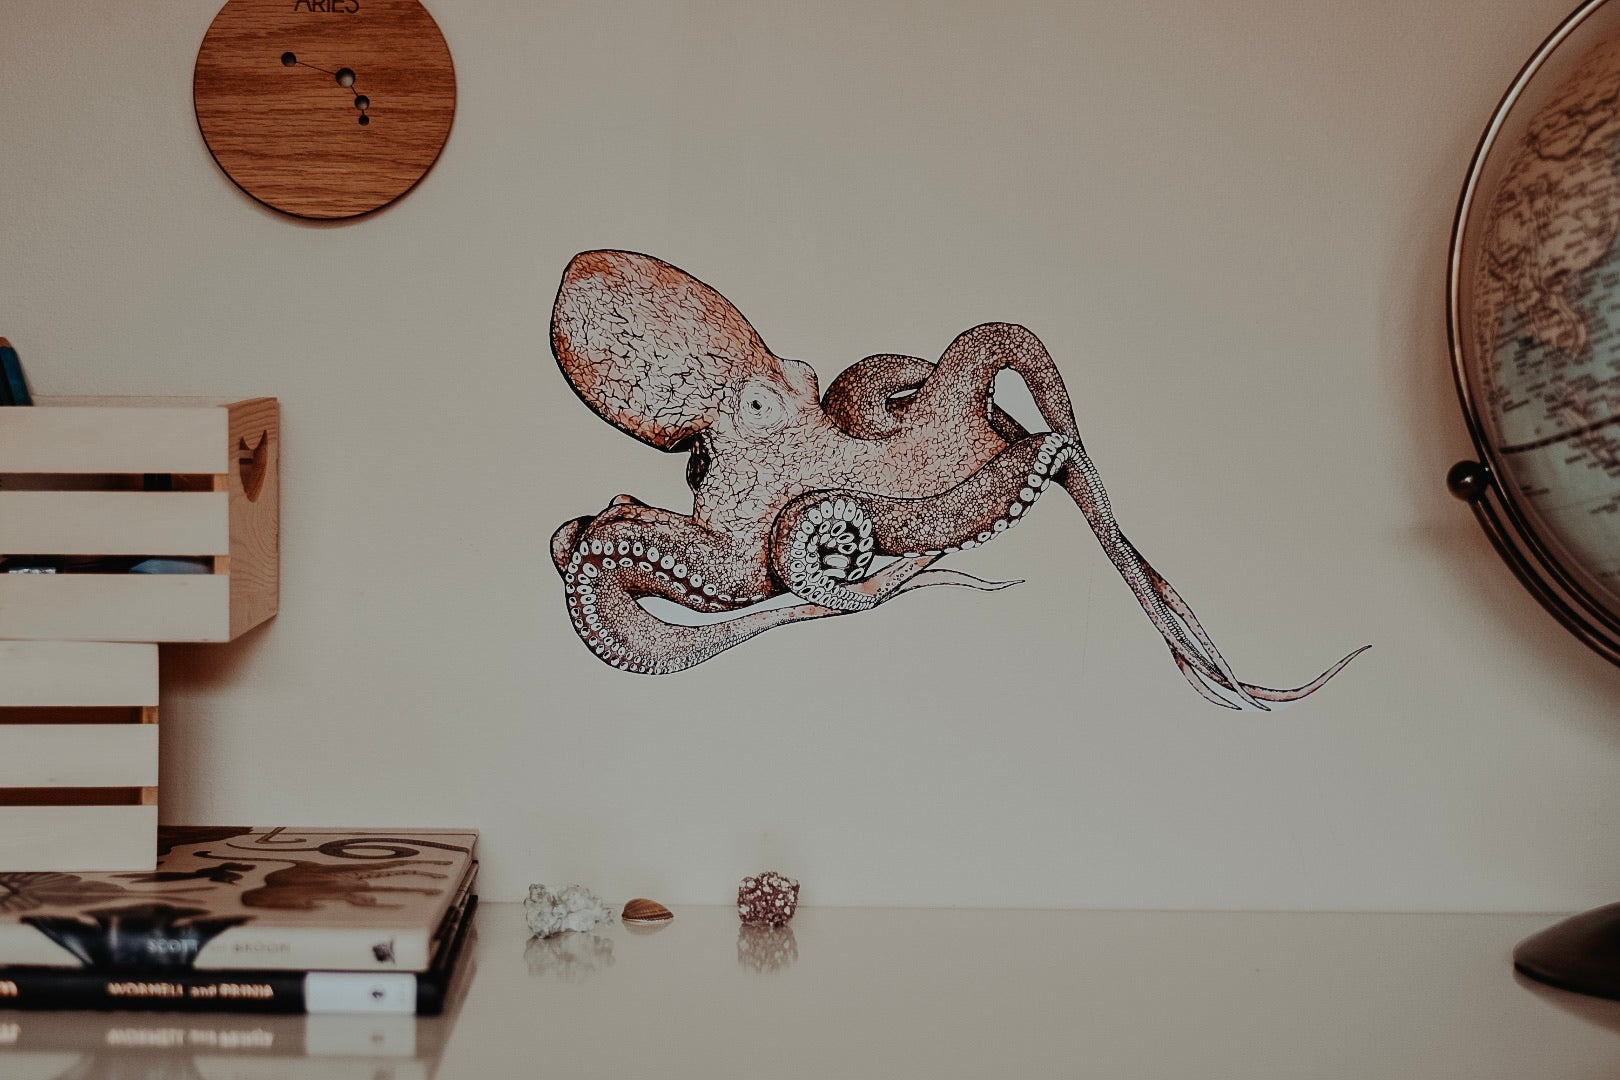 Occy the Octopus Fabric Wall Decal - Separate